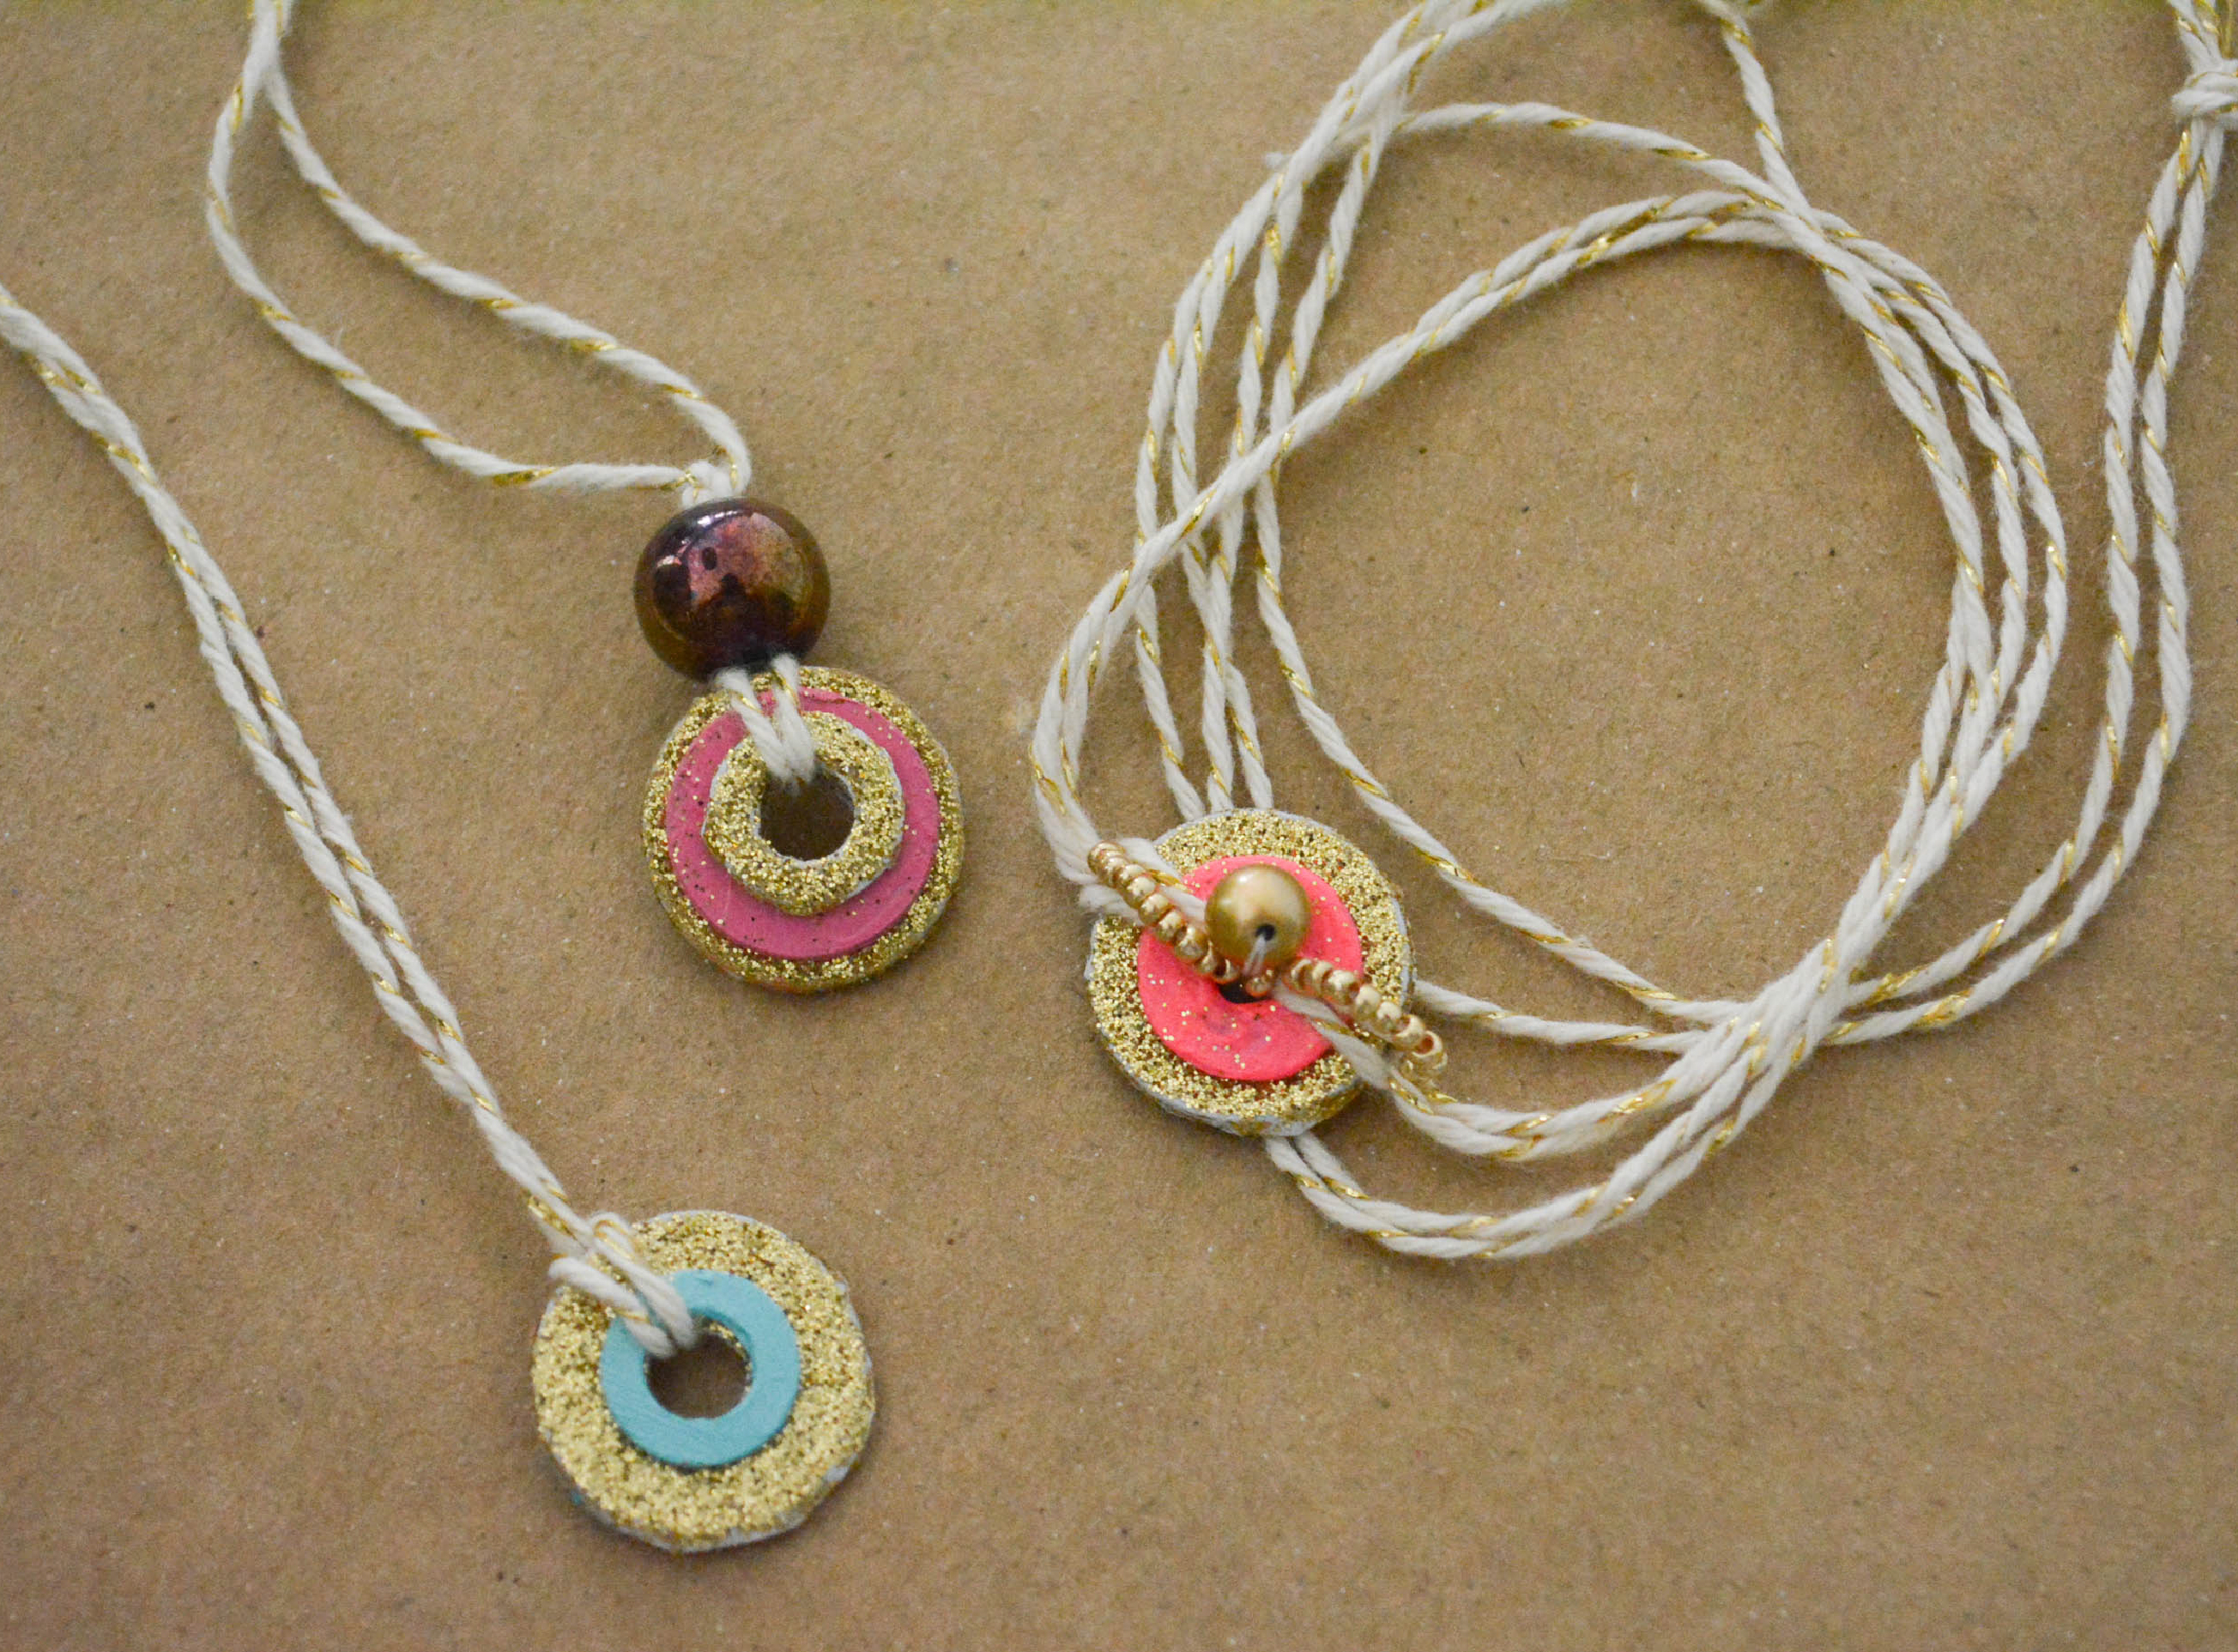 with scrapbook washer paper pin necklace made